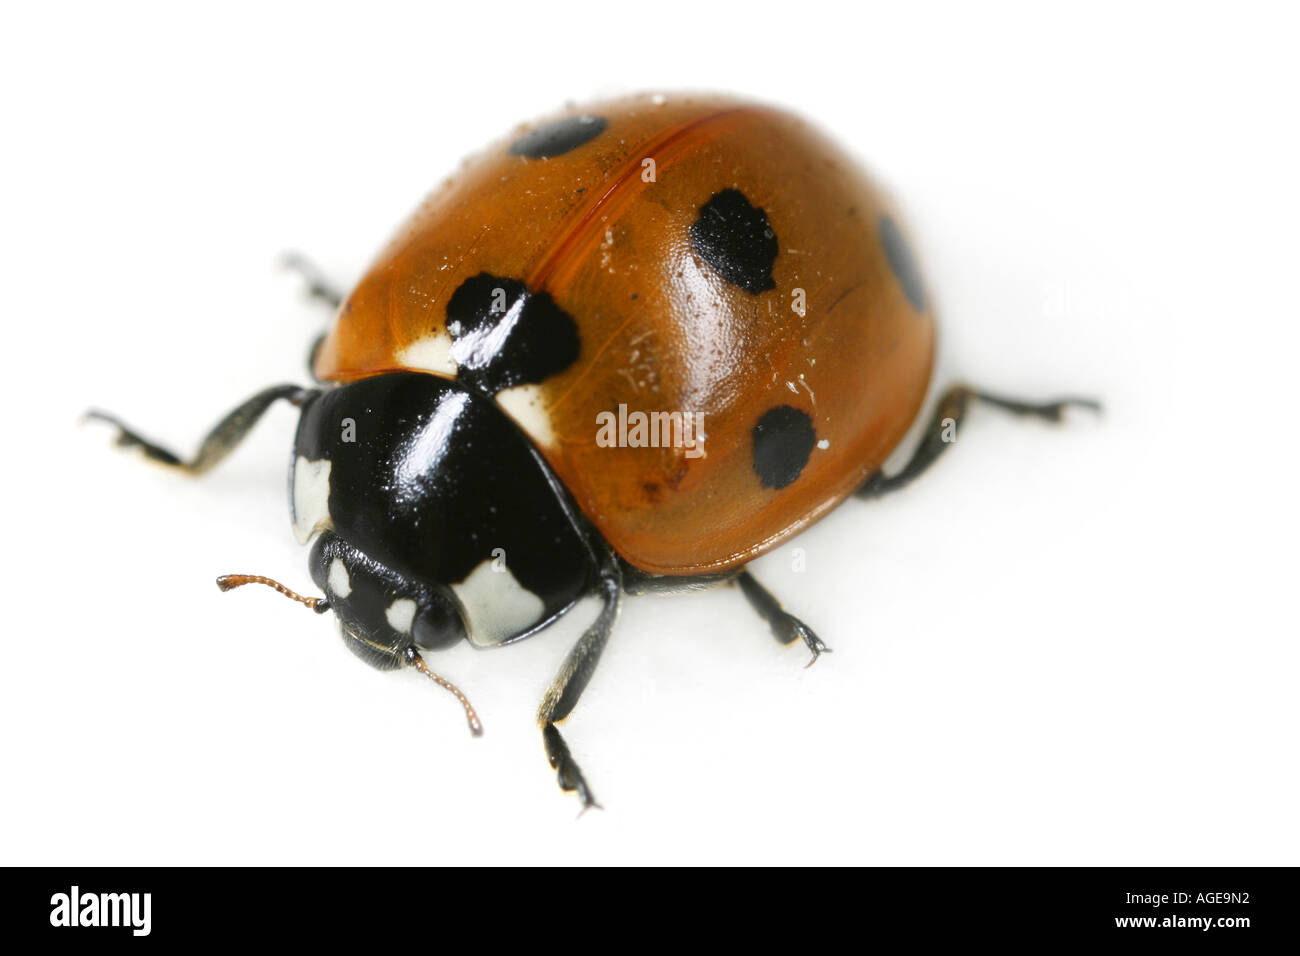 Close up of the Seven Spotted Ladybug, Coccinella septempunctata, on white backgroundStock Photo